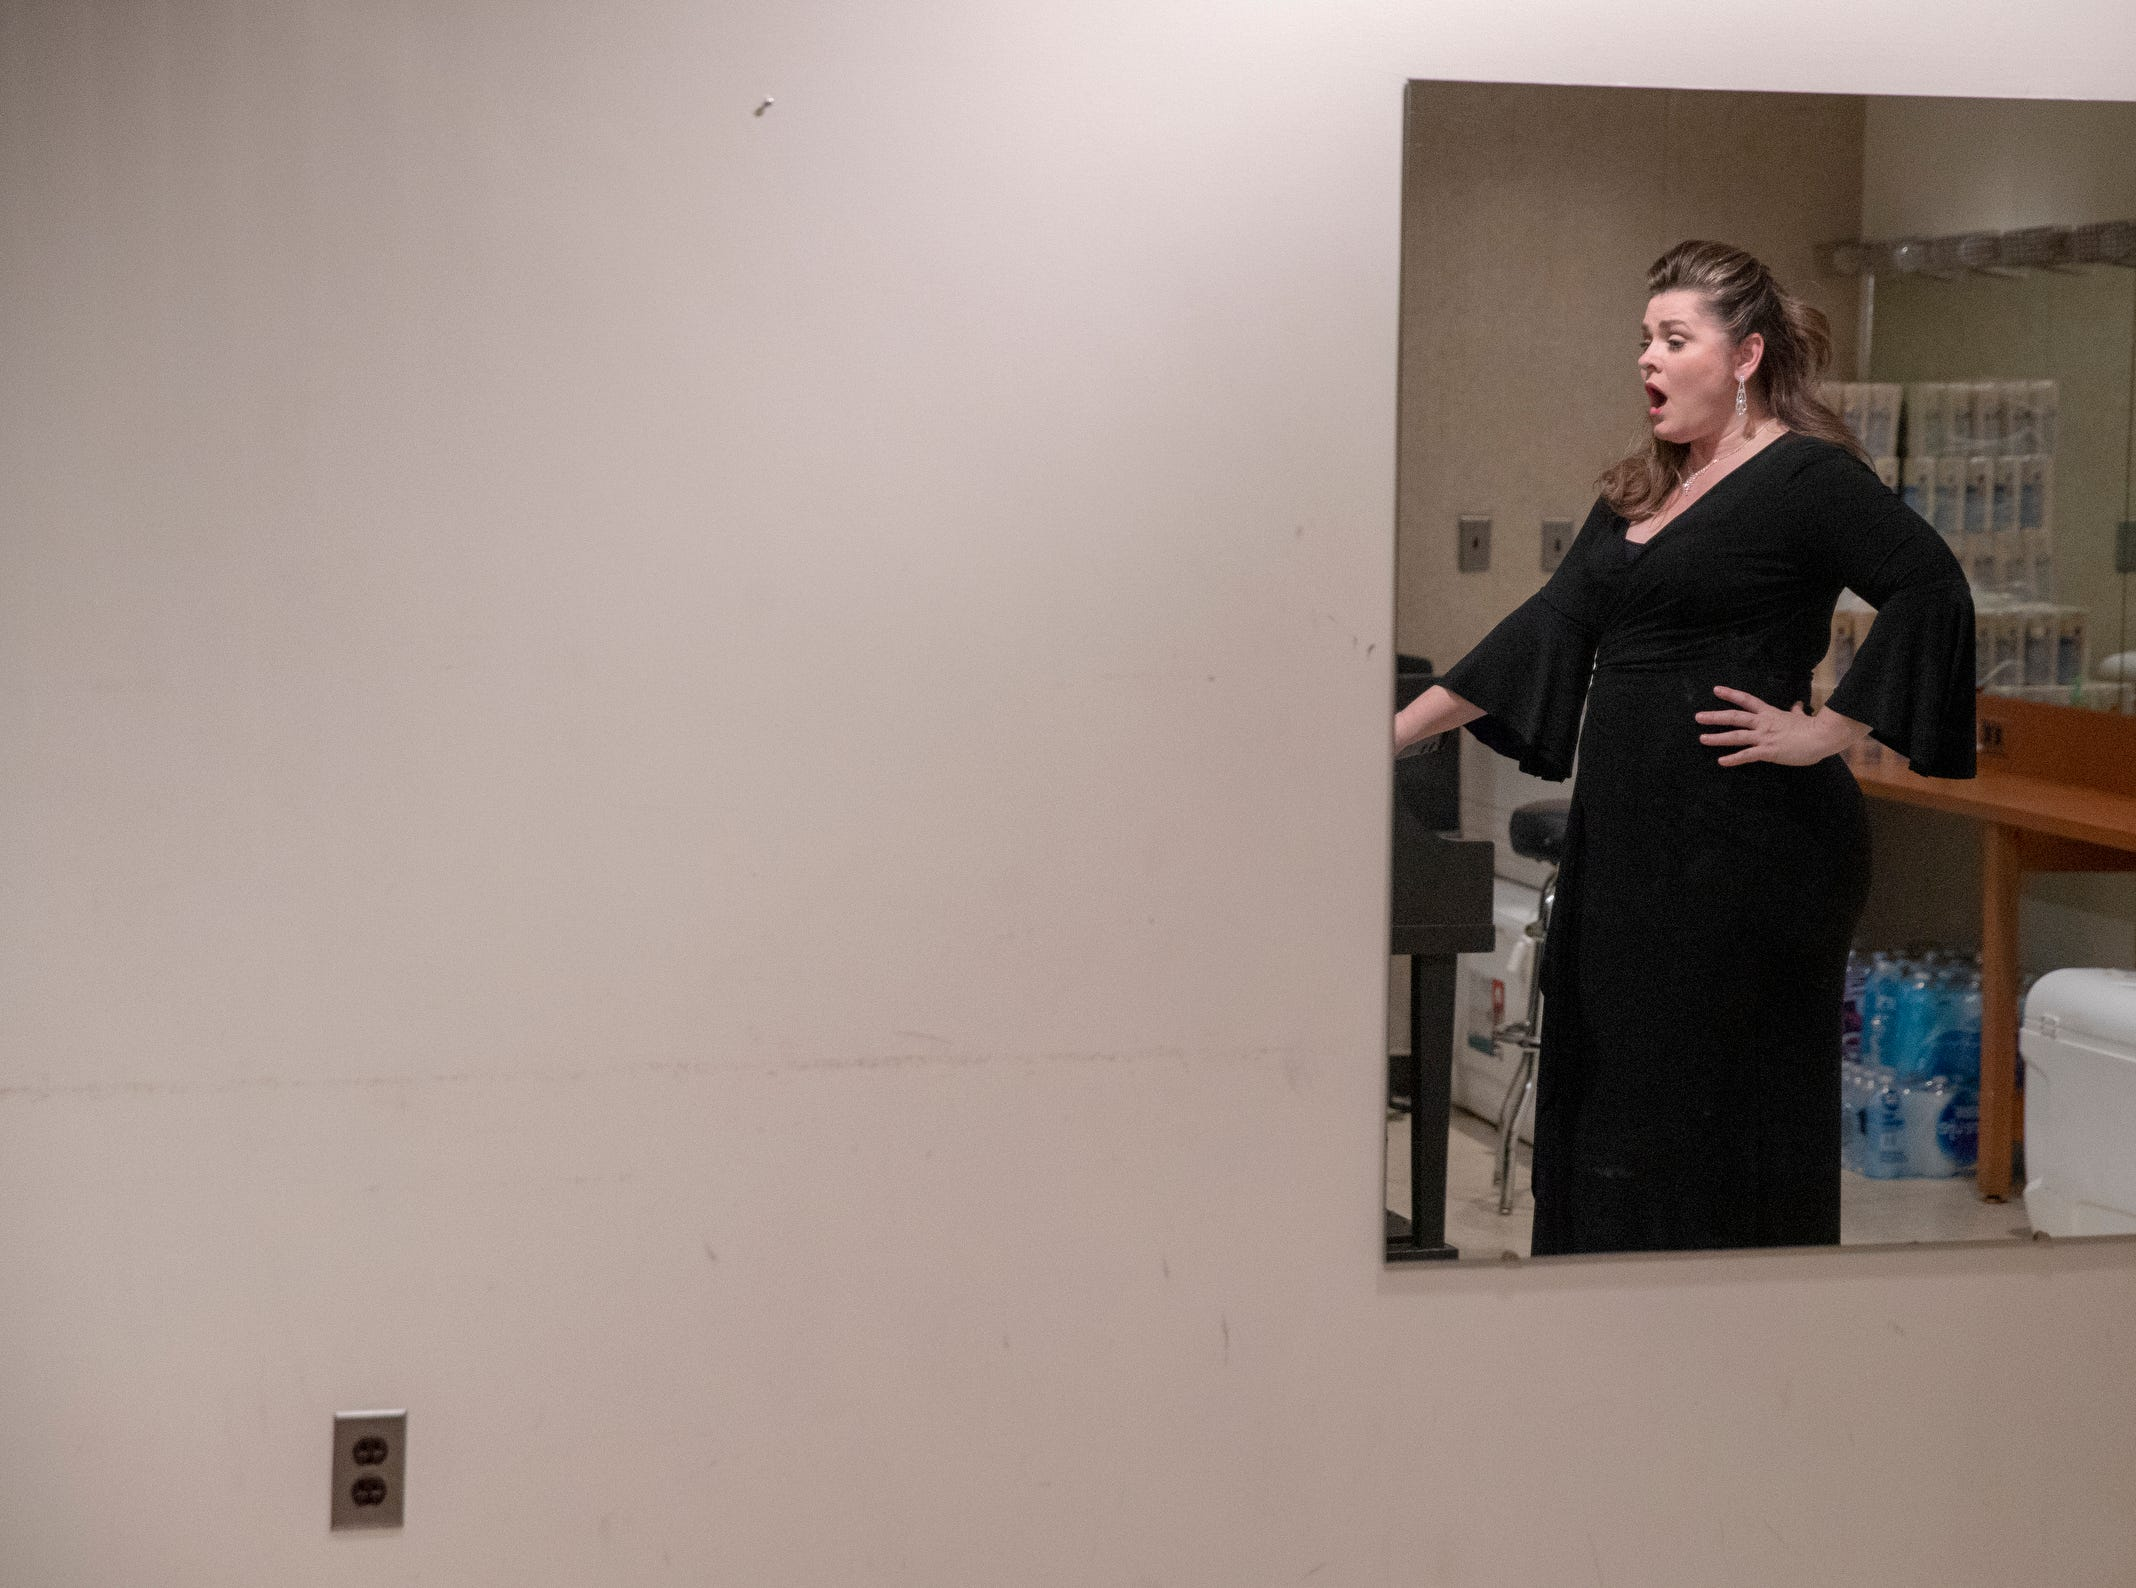 Michele McConnell warms up in a rehearsal room prior to the evening's Festival of Carols performance at Warren Performing Arts Center, Sunday, Dec; 9, 2018. McConnell is a soprano from Indianapolis, and has lived and performed at the highest level in New York for the past 20 years. Dance Kaleidoscope and Indianapolis Chamber Orchestra joined the Indianapolis Symphonic Choir for the show, that will be repeated several more times in the area this season.